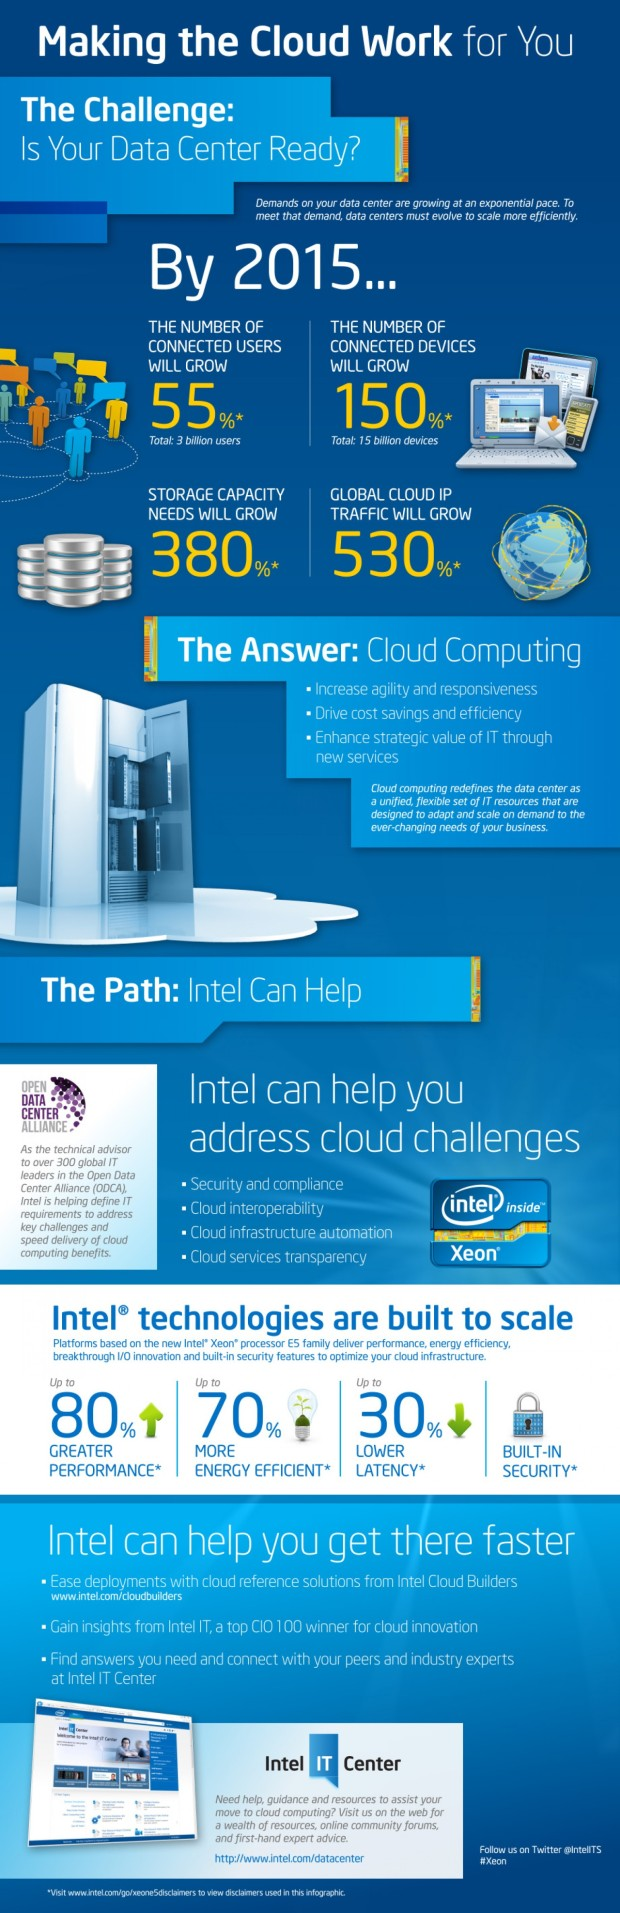 making-the-cloud-work-for-you_5029160d935be_w1500